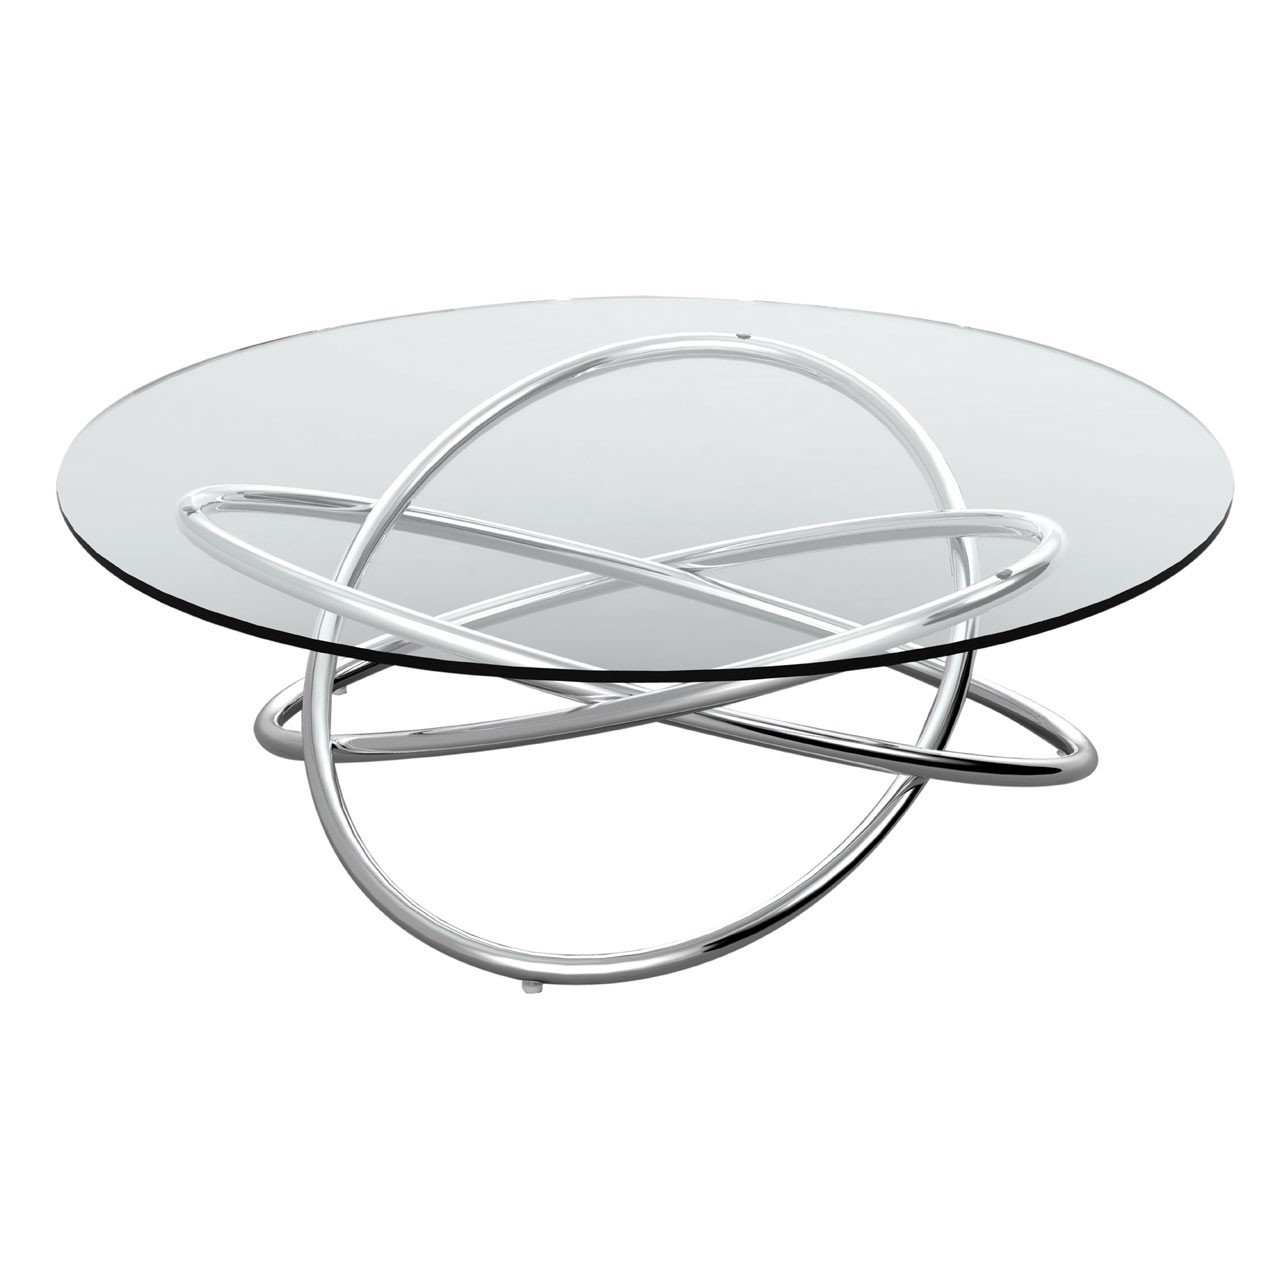 Orb Coffee Table Stainless Steel And Tempered Clear Glass